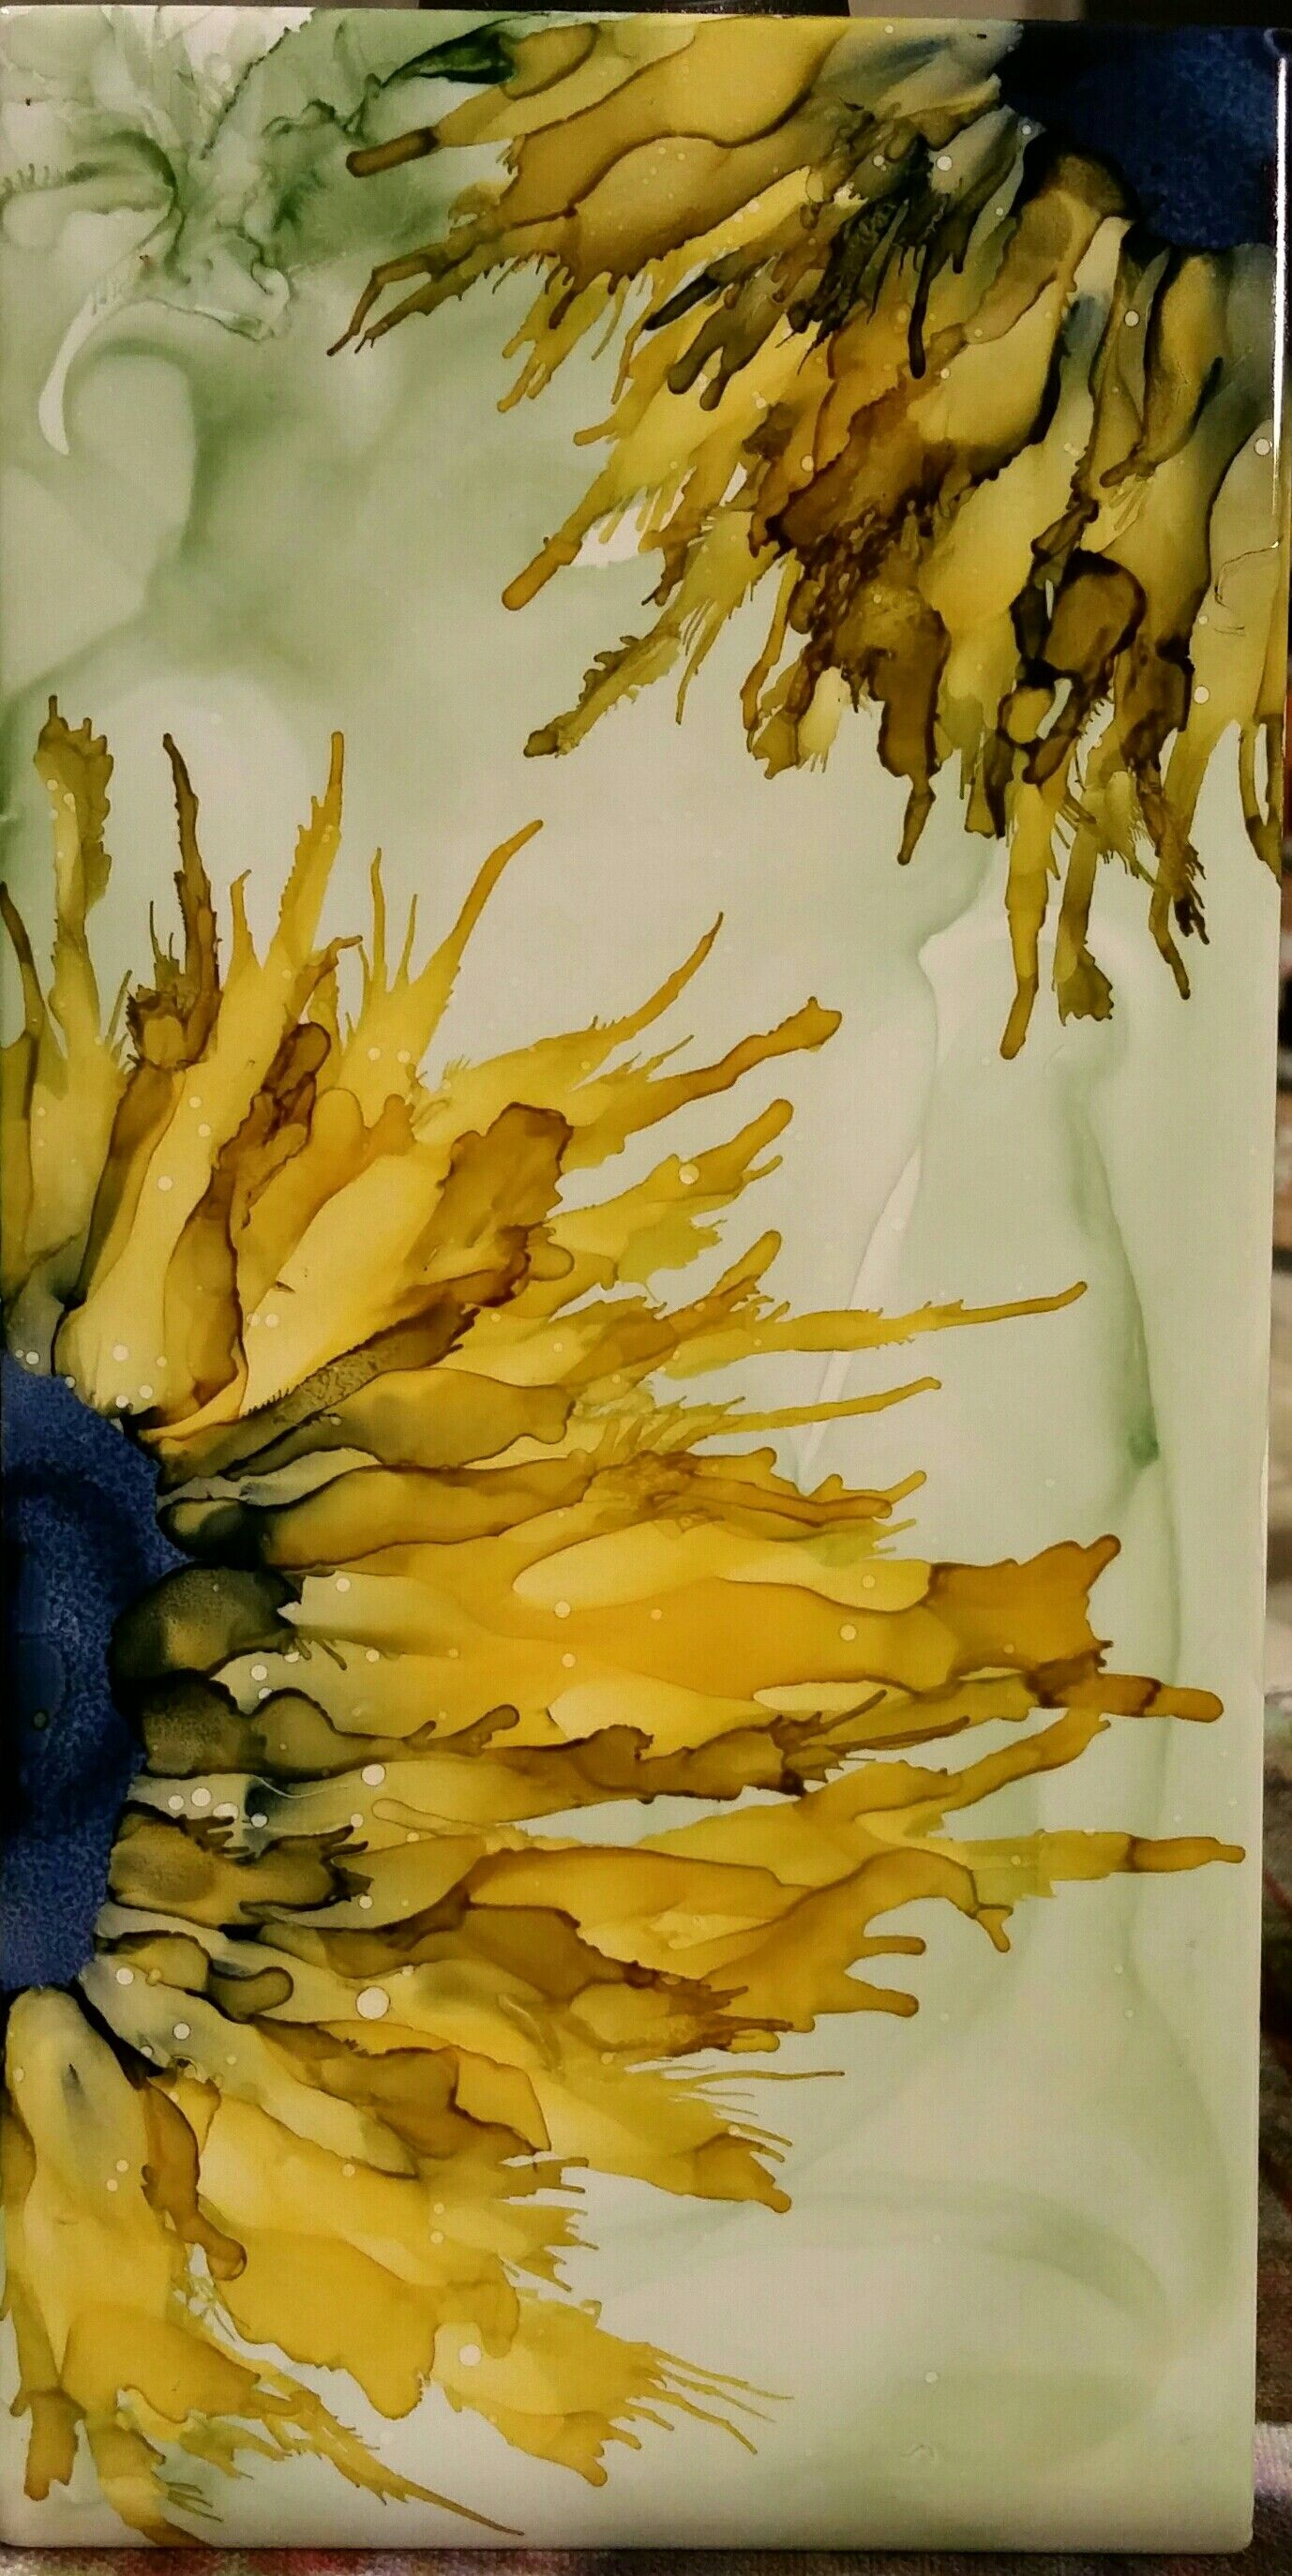 Sunflowers in alcohol ink on 8x4 ceramic tile by tina alcohol sunflowers in alcohol ink on 8x4 ceramic tile by tina dailygadgetfo Choice Image